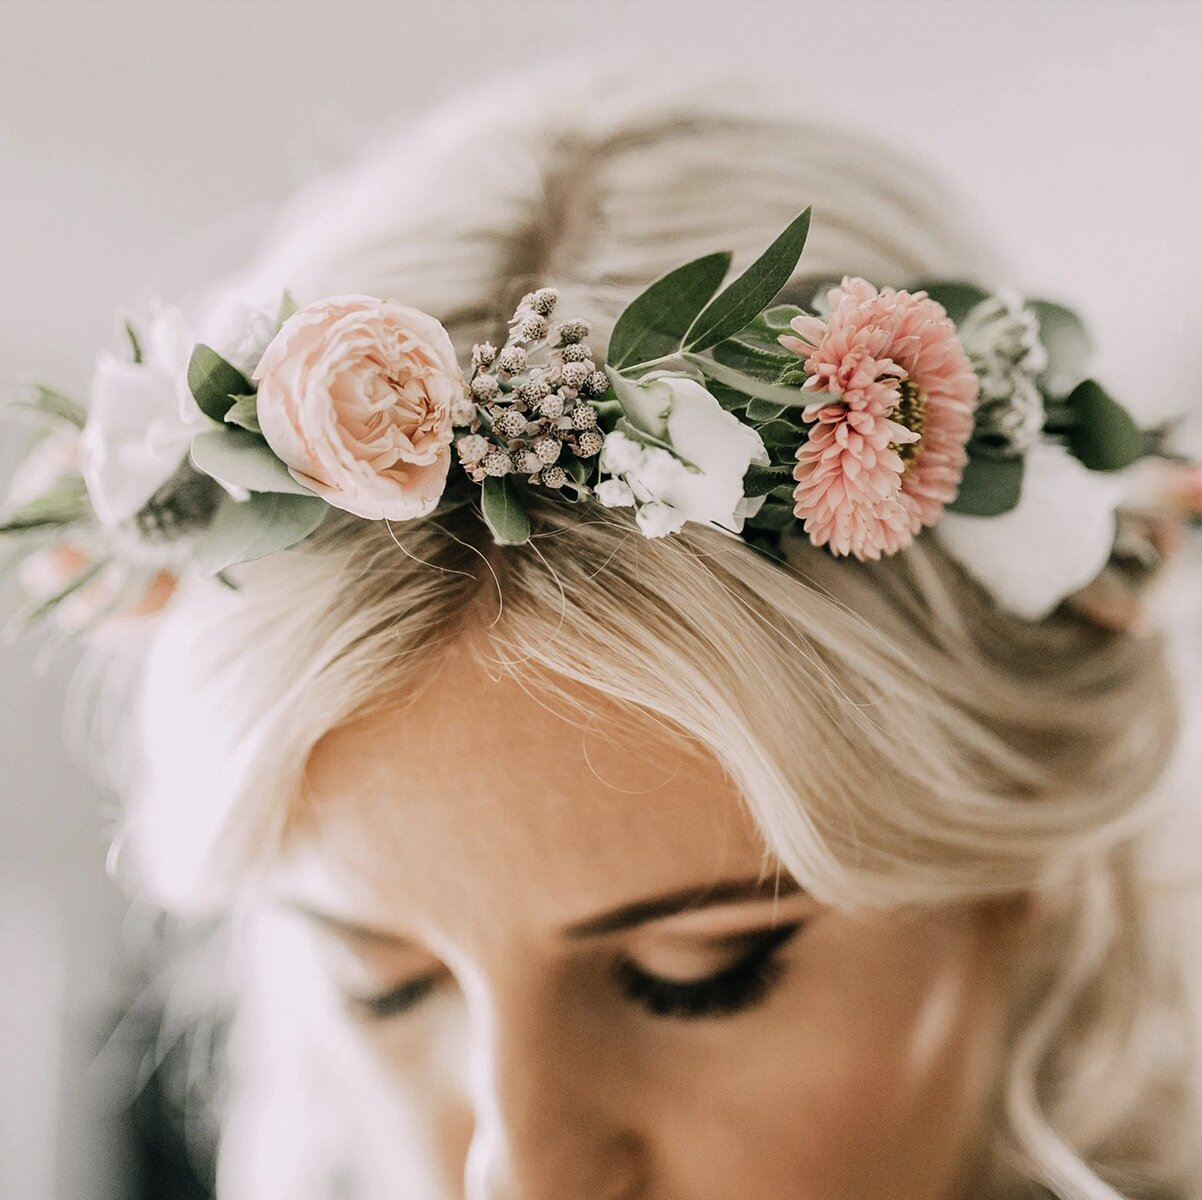 wedding-flowers-bridal-party-hair-crown-comb-packages-prices-cheap